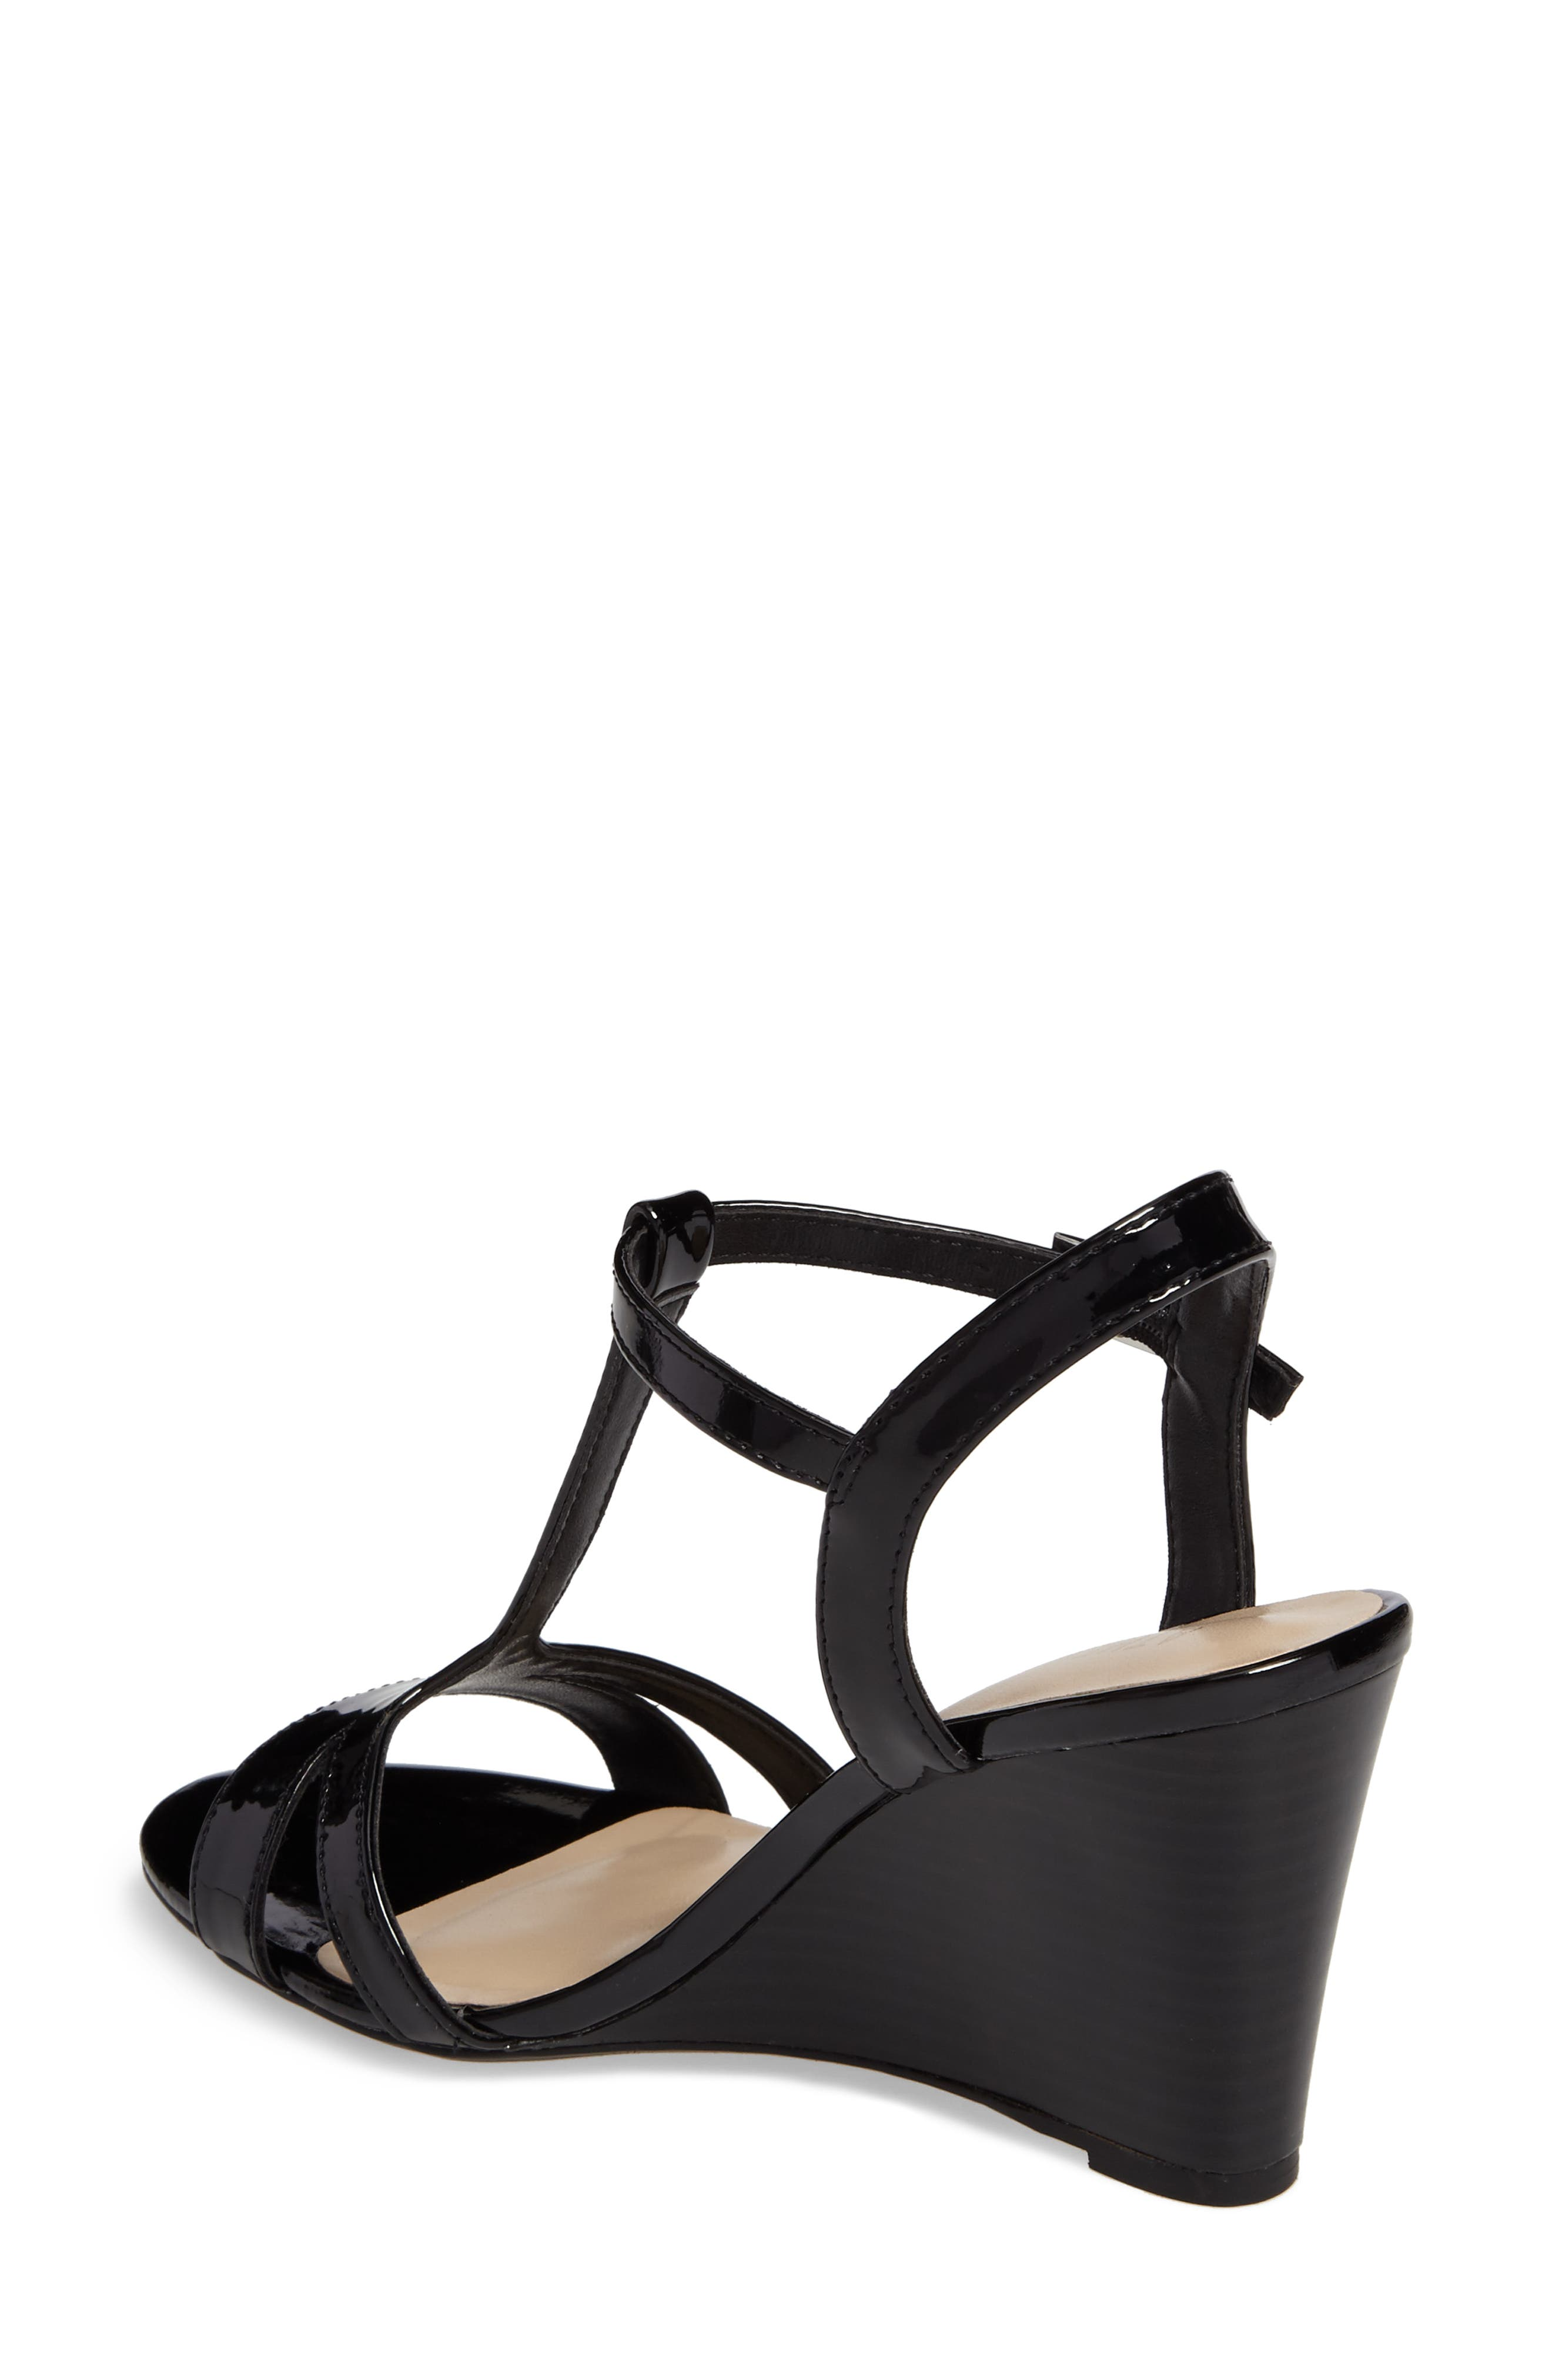 Andres Wedge T-Strap Sandal,                             Alternate thumbnail 2, color,                             002